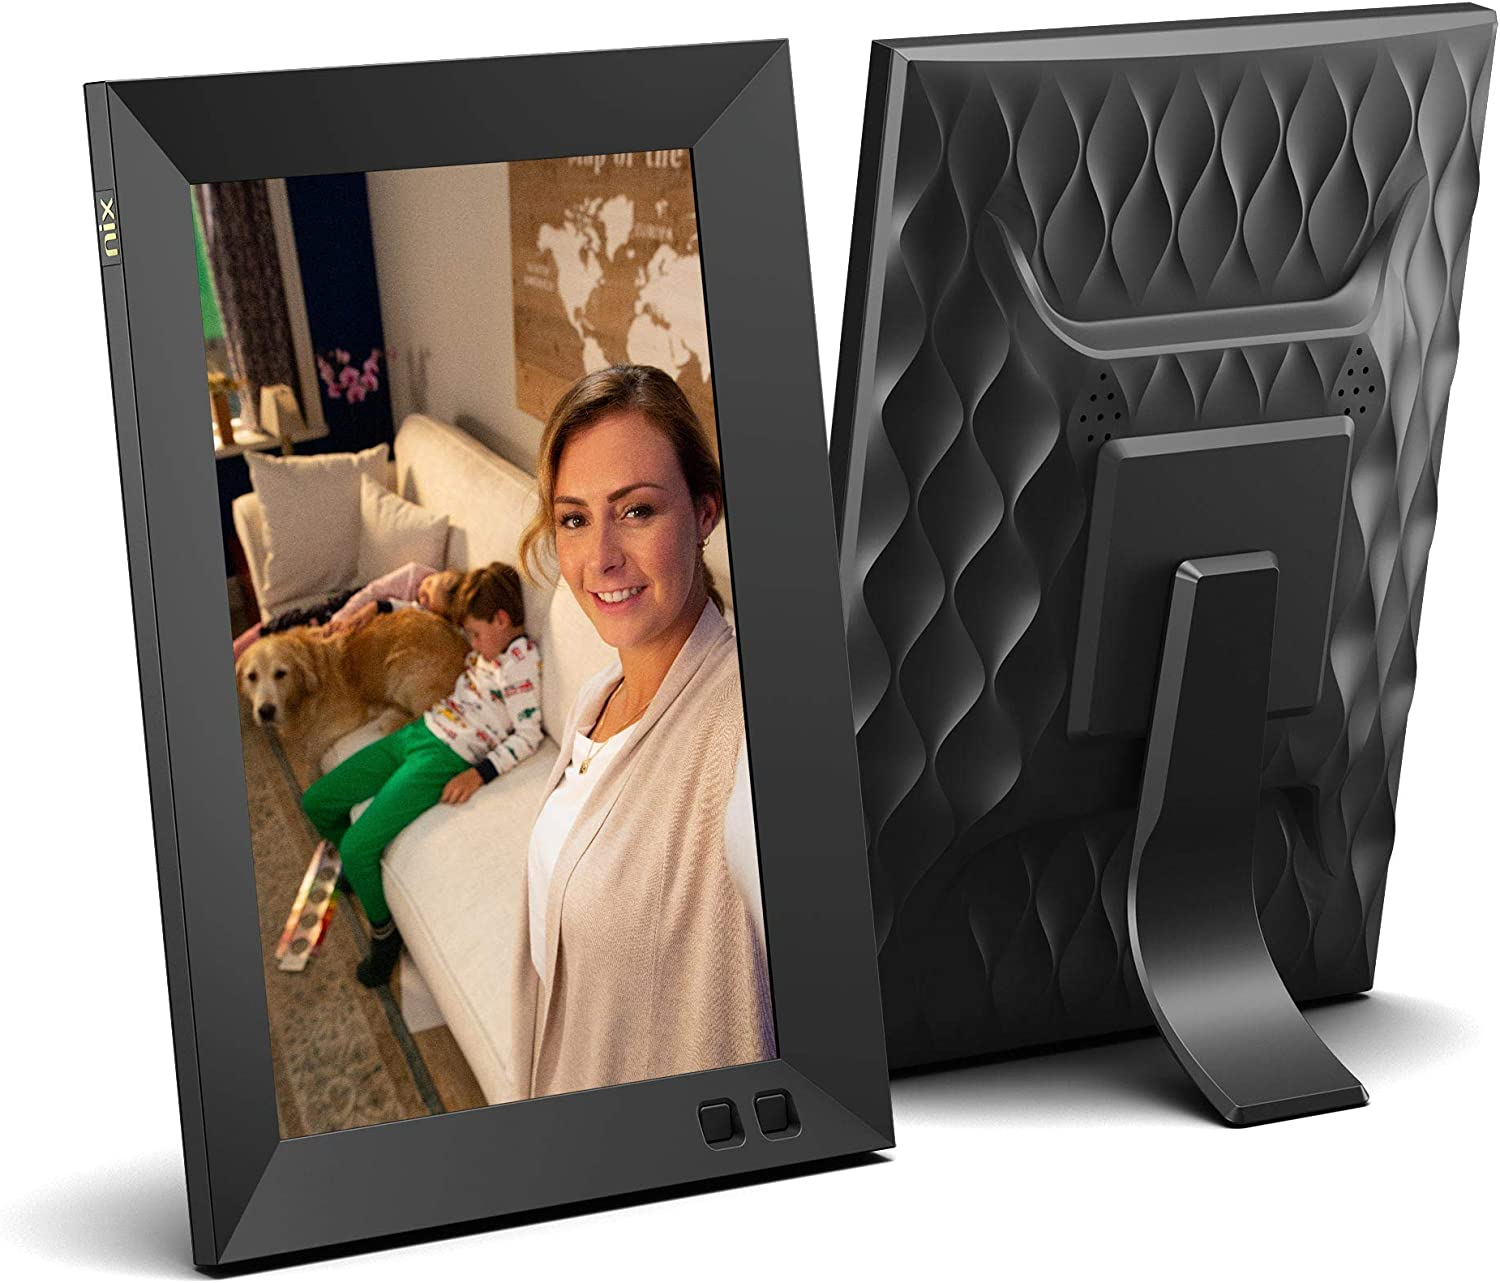 NIX 8 Inch Digital Picture Frame - Portrait or Landscape Stand, HD Resolution, Auto-Rotate, Remote Control - Mix Photos and Videos in The Same Slideshow